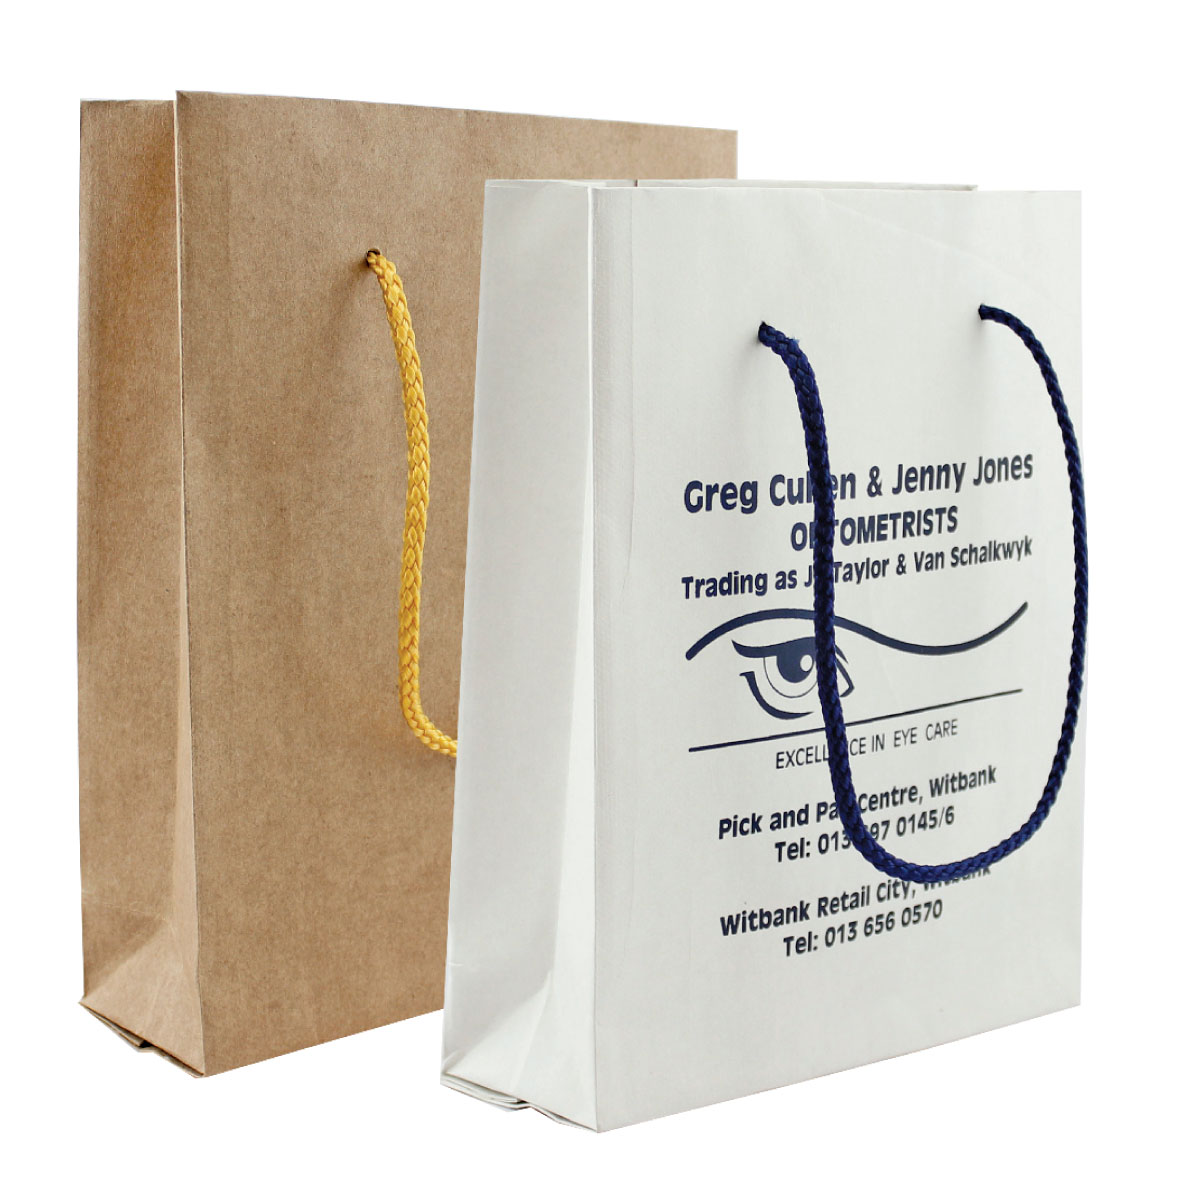 A5 carrier bag